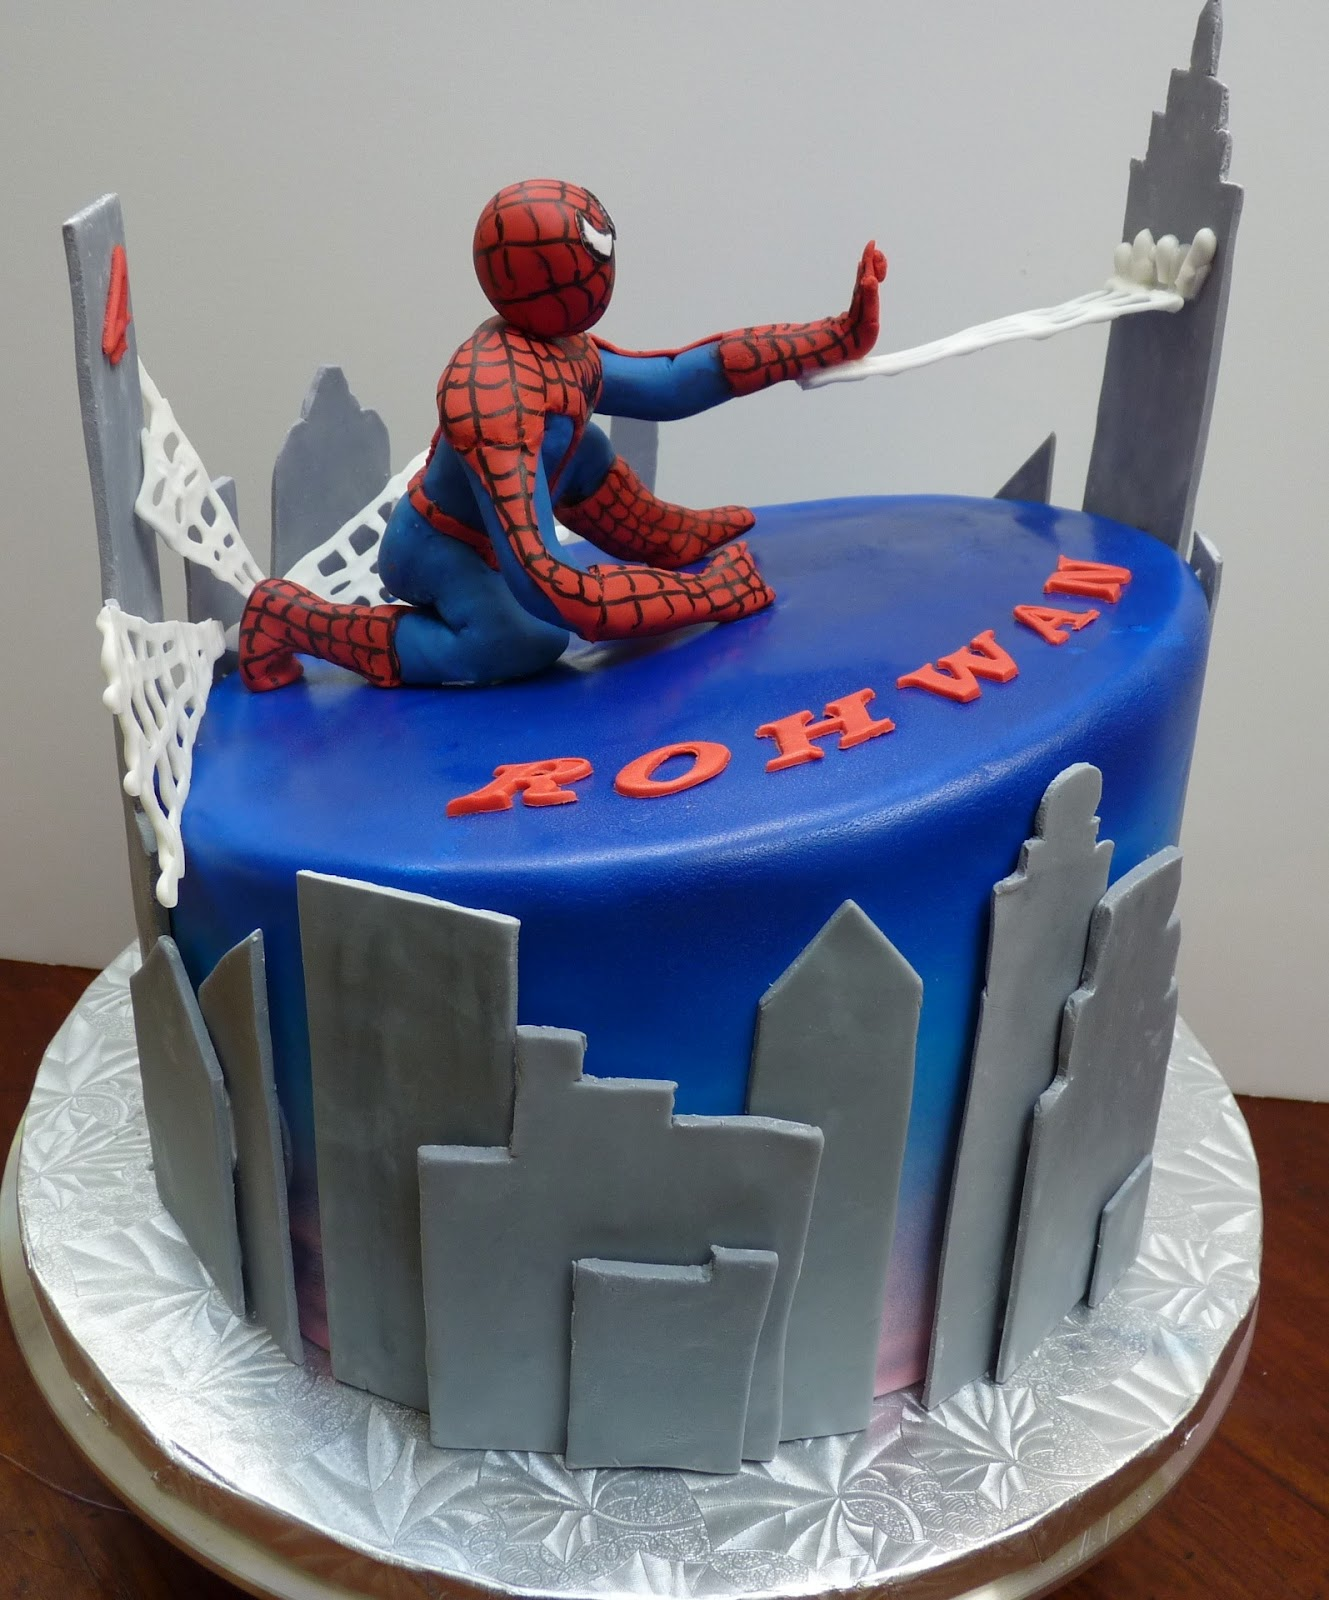 Birthday Cake Designs Spiderman : Enchanted Icing: Spiderman Takes The Cake